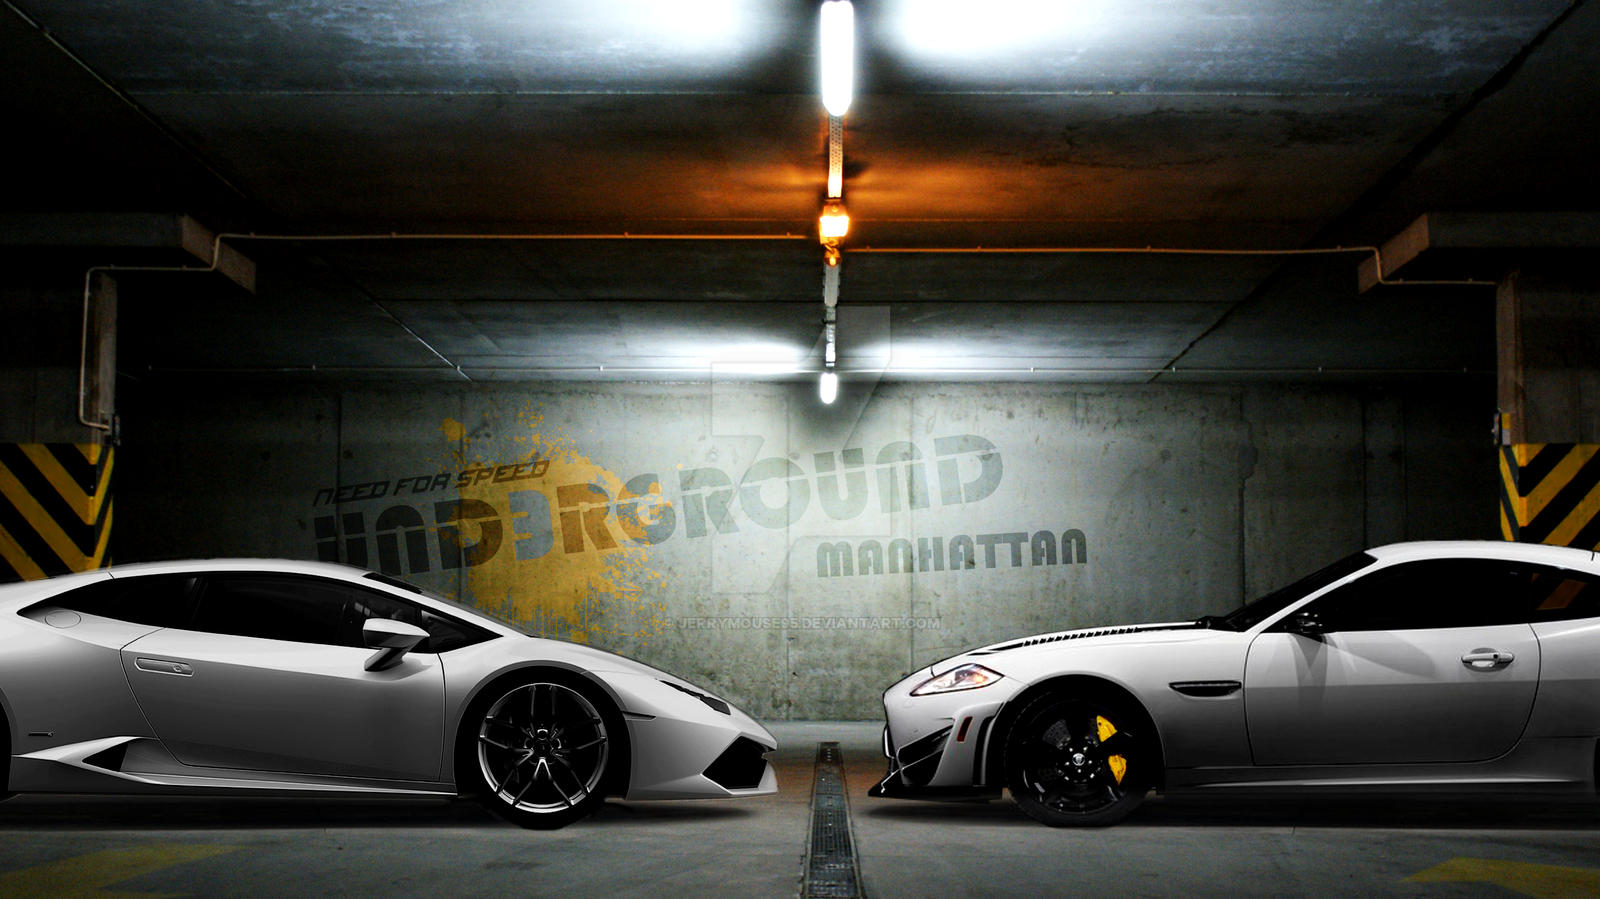 need for speed underground 3 manhattan by jerrymouse95 on deviantart. Black Bedroom Furniture Sets. Home Design Ideas